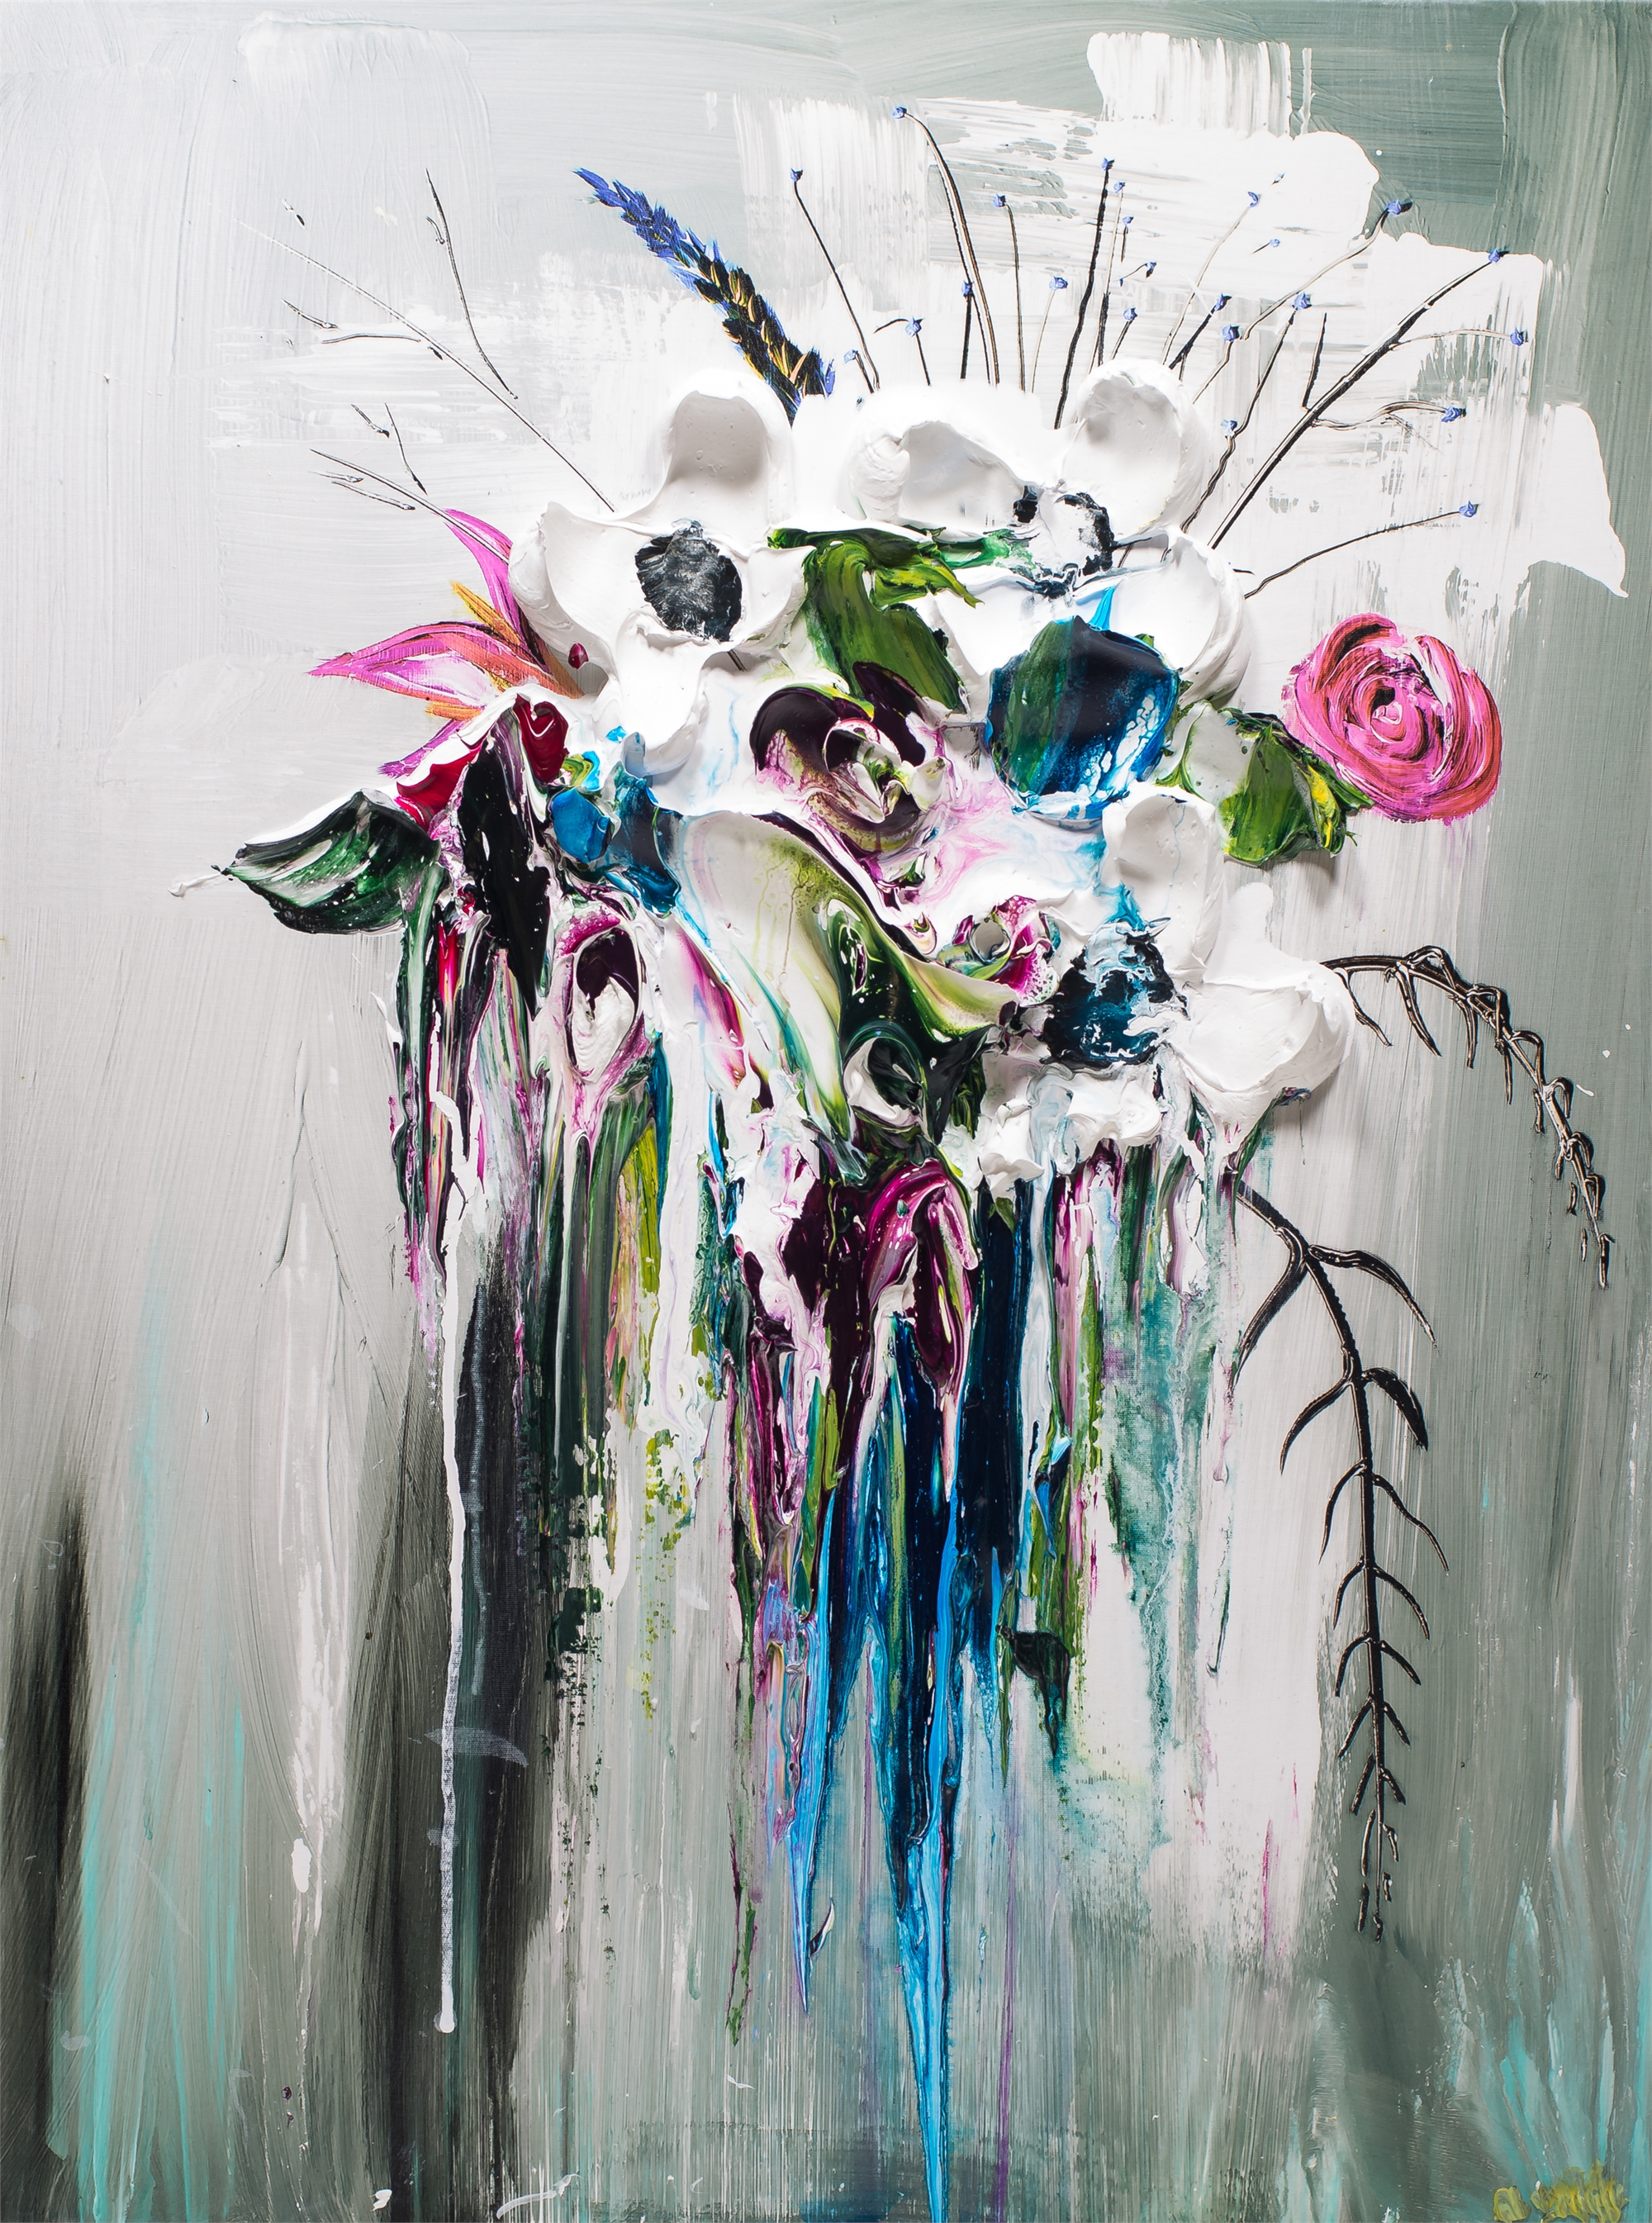 ABSTRACT FLORAL BOUQUET HPAE 8/50 by JUSTIN GAFFREY